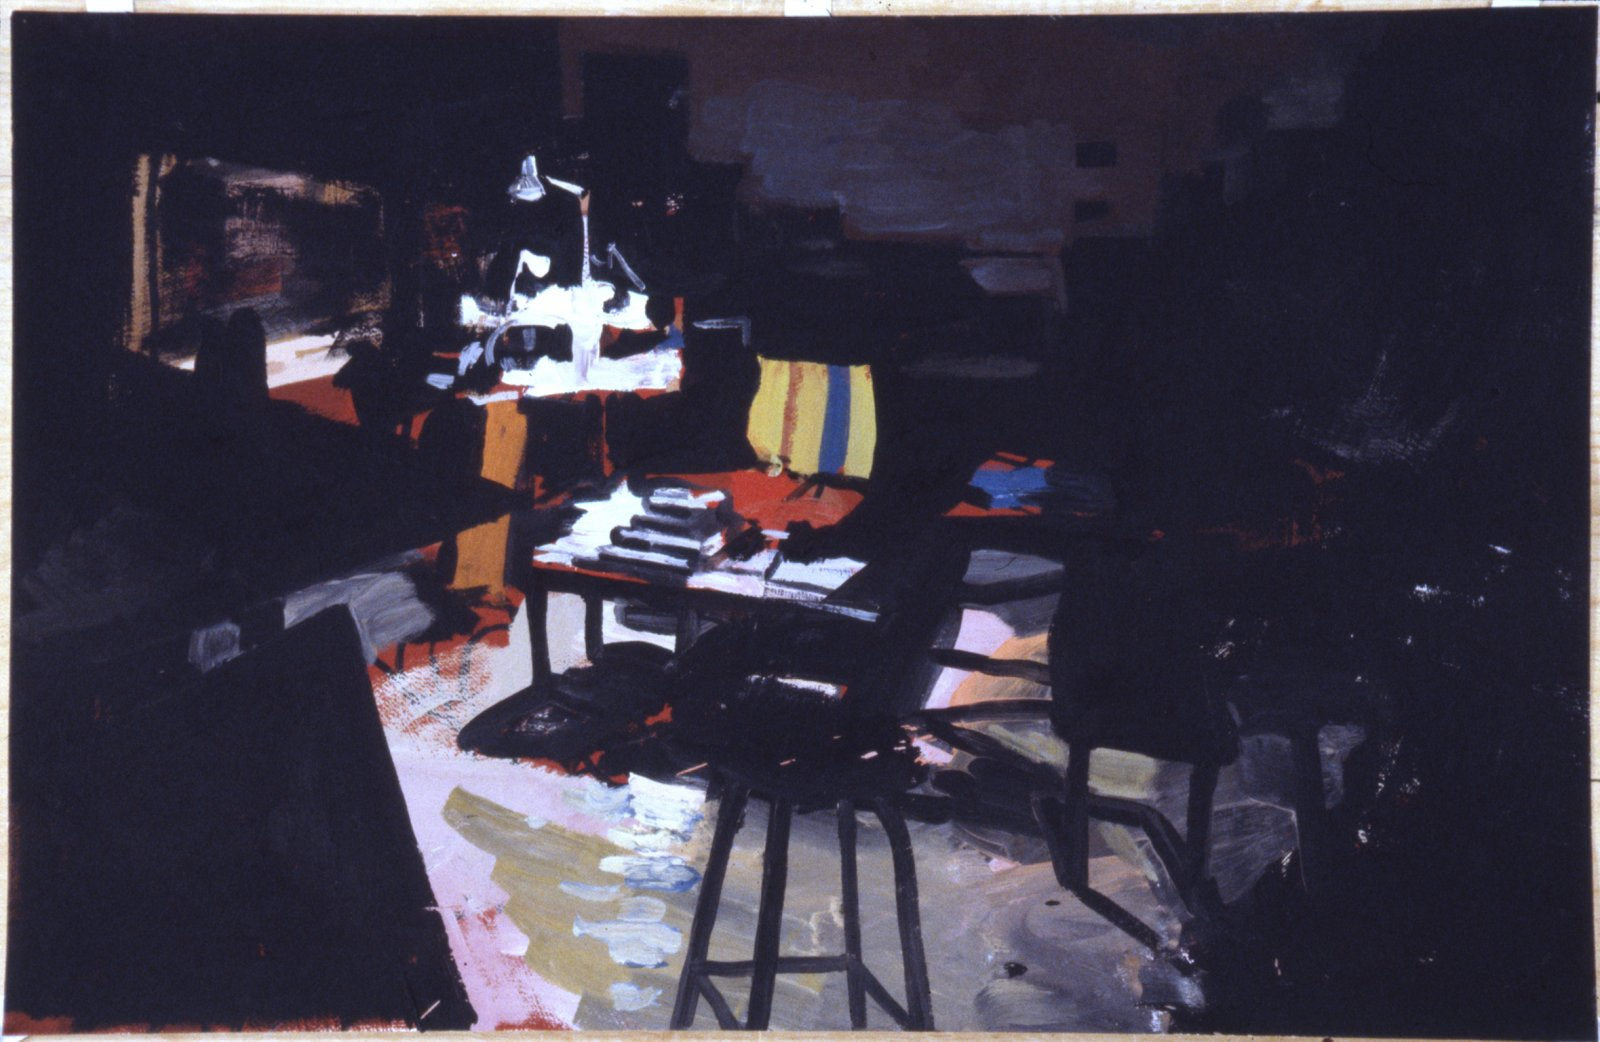 Damian Moppett, Studio at Night, 2006, oil on paper, 28 x 40 in. (71 x 103 cm) by Damian Moppett